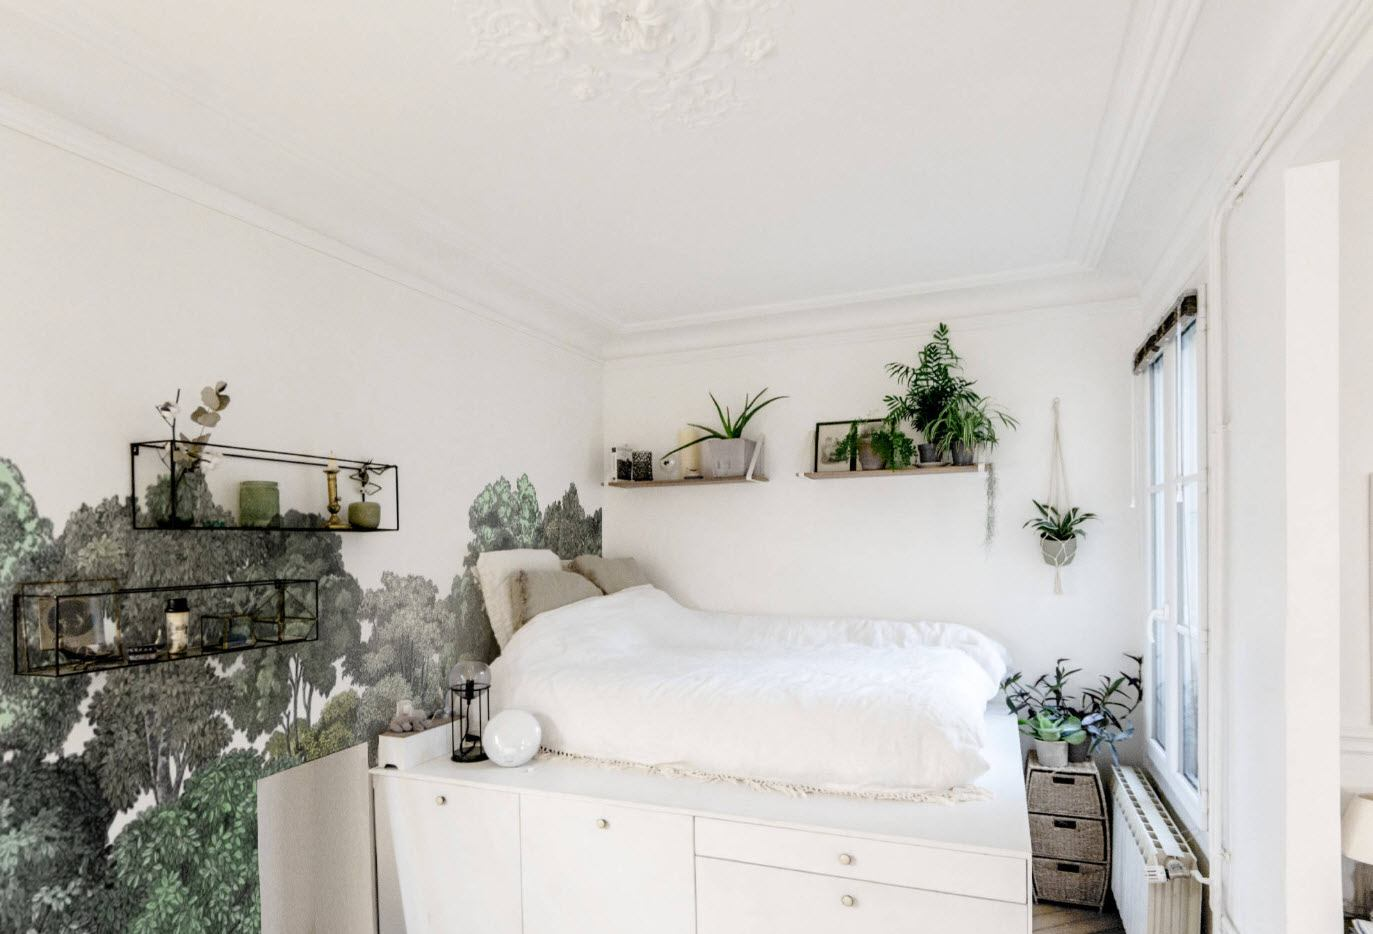 White Scandi bedroom with the bed on storage pedestal